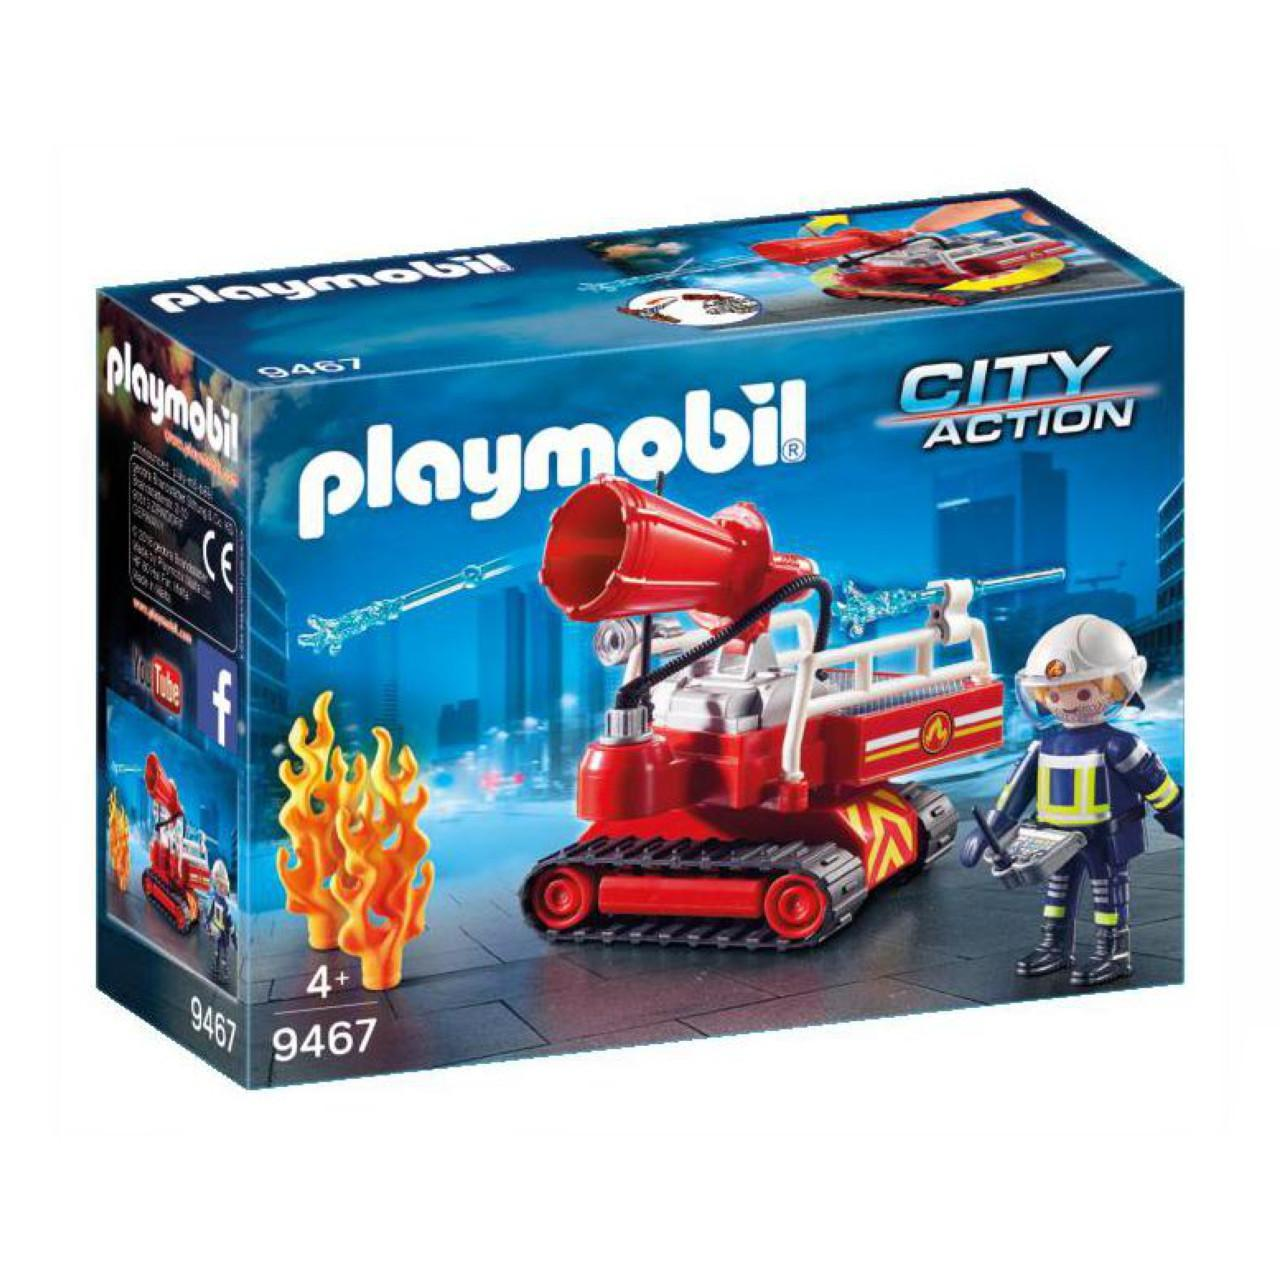 Playmobil City Action 9467 Fire Water Cannon